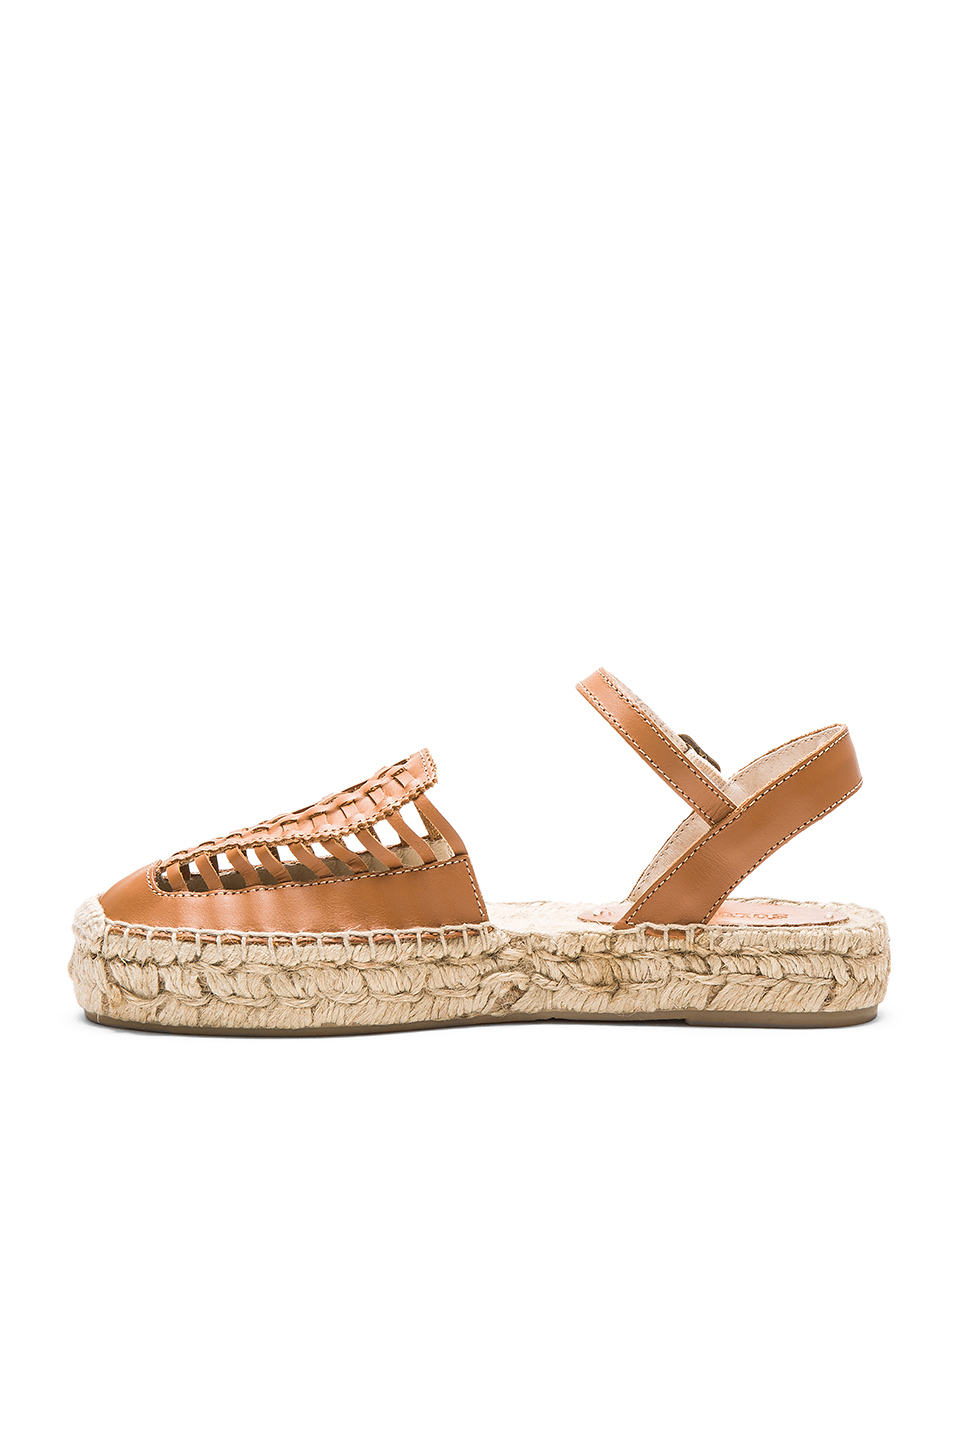 79329f9f276d Lyst - Soludos Platform Huarache Sandals in Brown